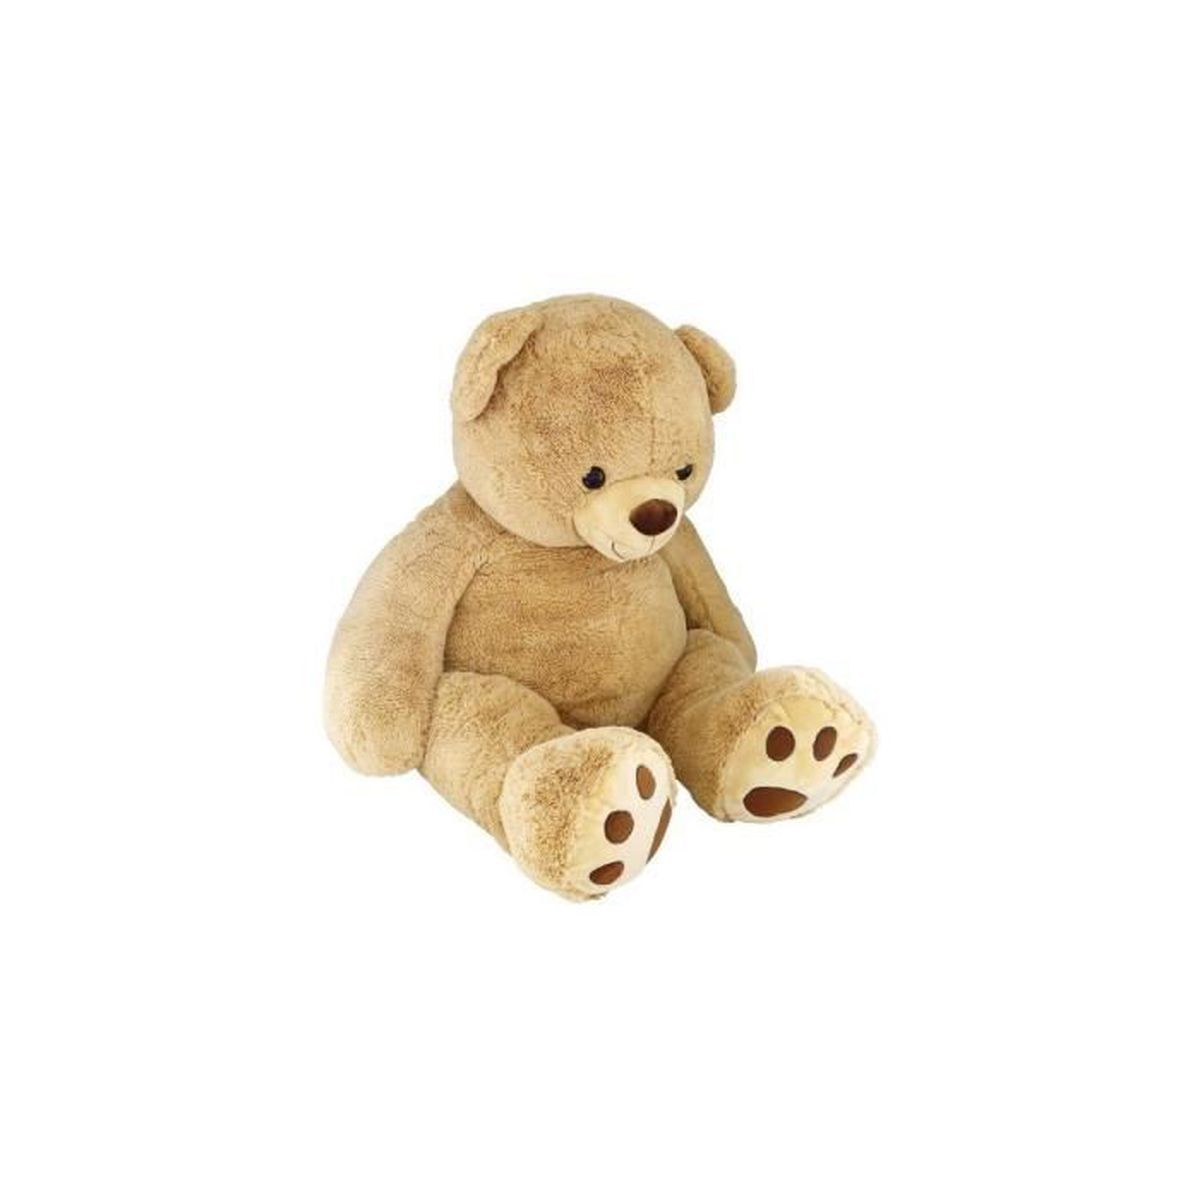 peluche mega ours beige 1 metre 35 teddy peluche. Black Bedroom Furniture Sets. Home Design Ideas